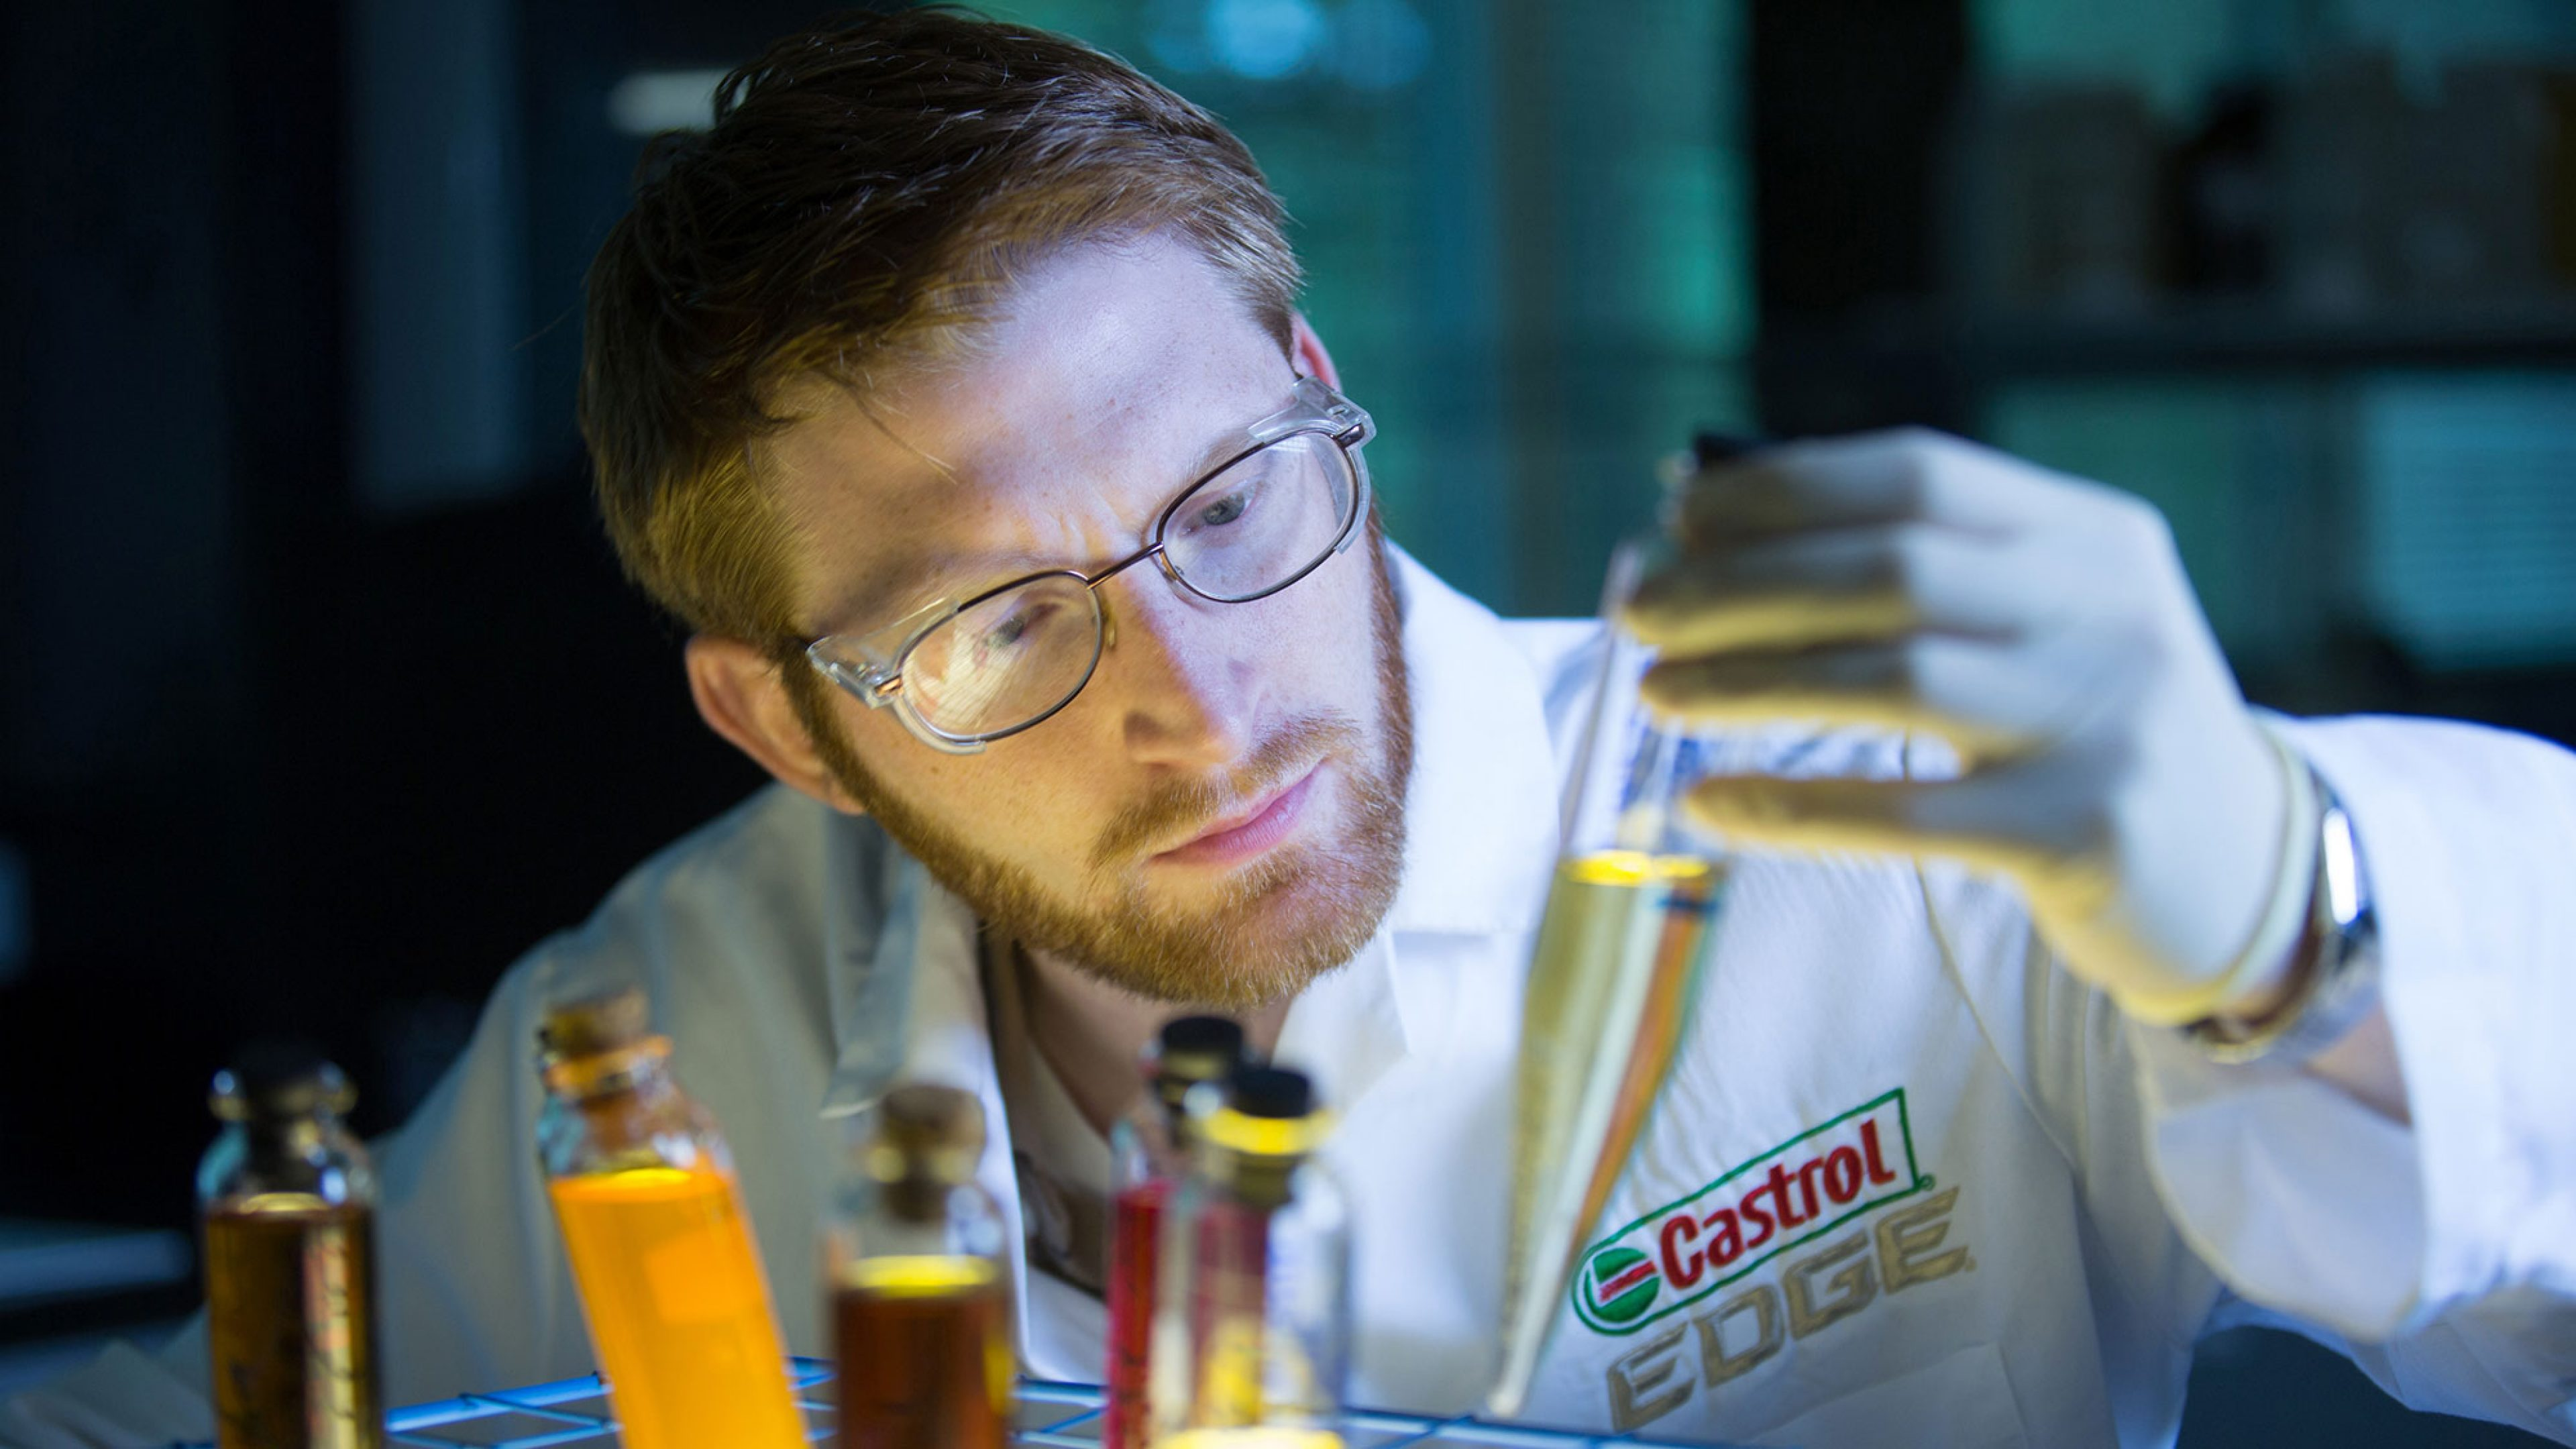 Employee looking at oil in glass tubes